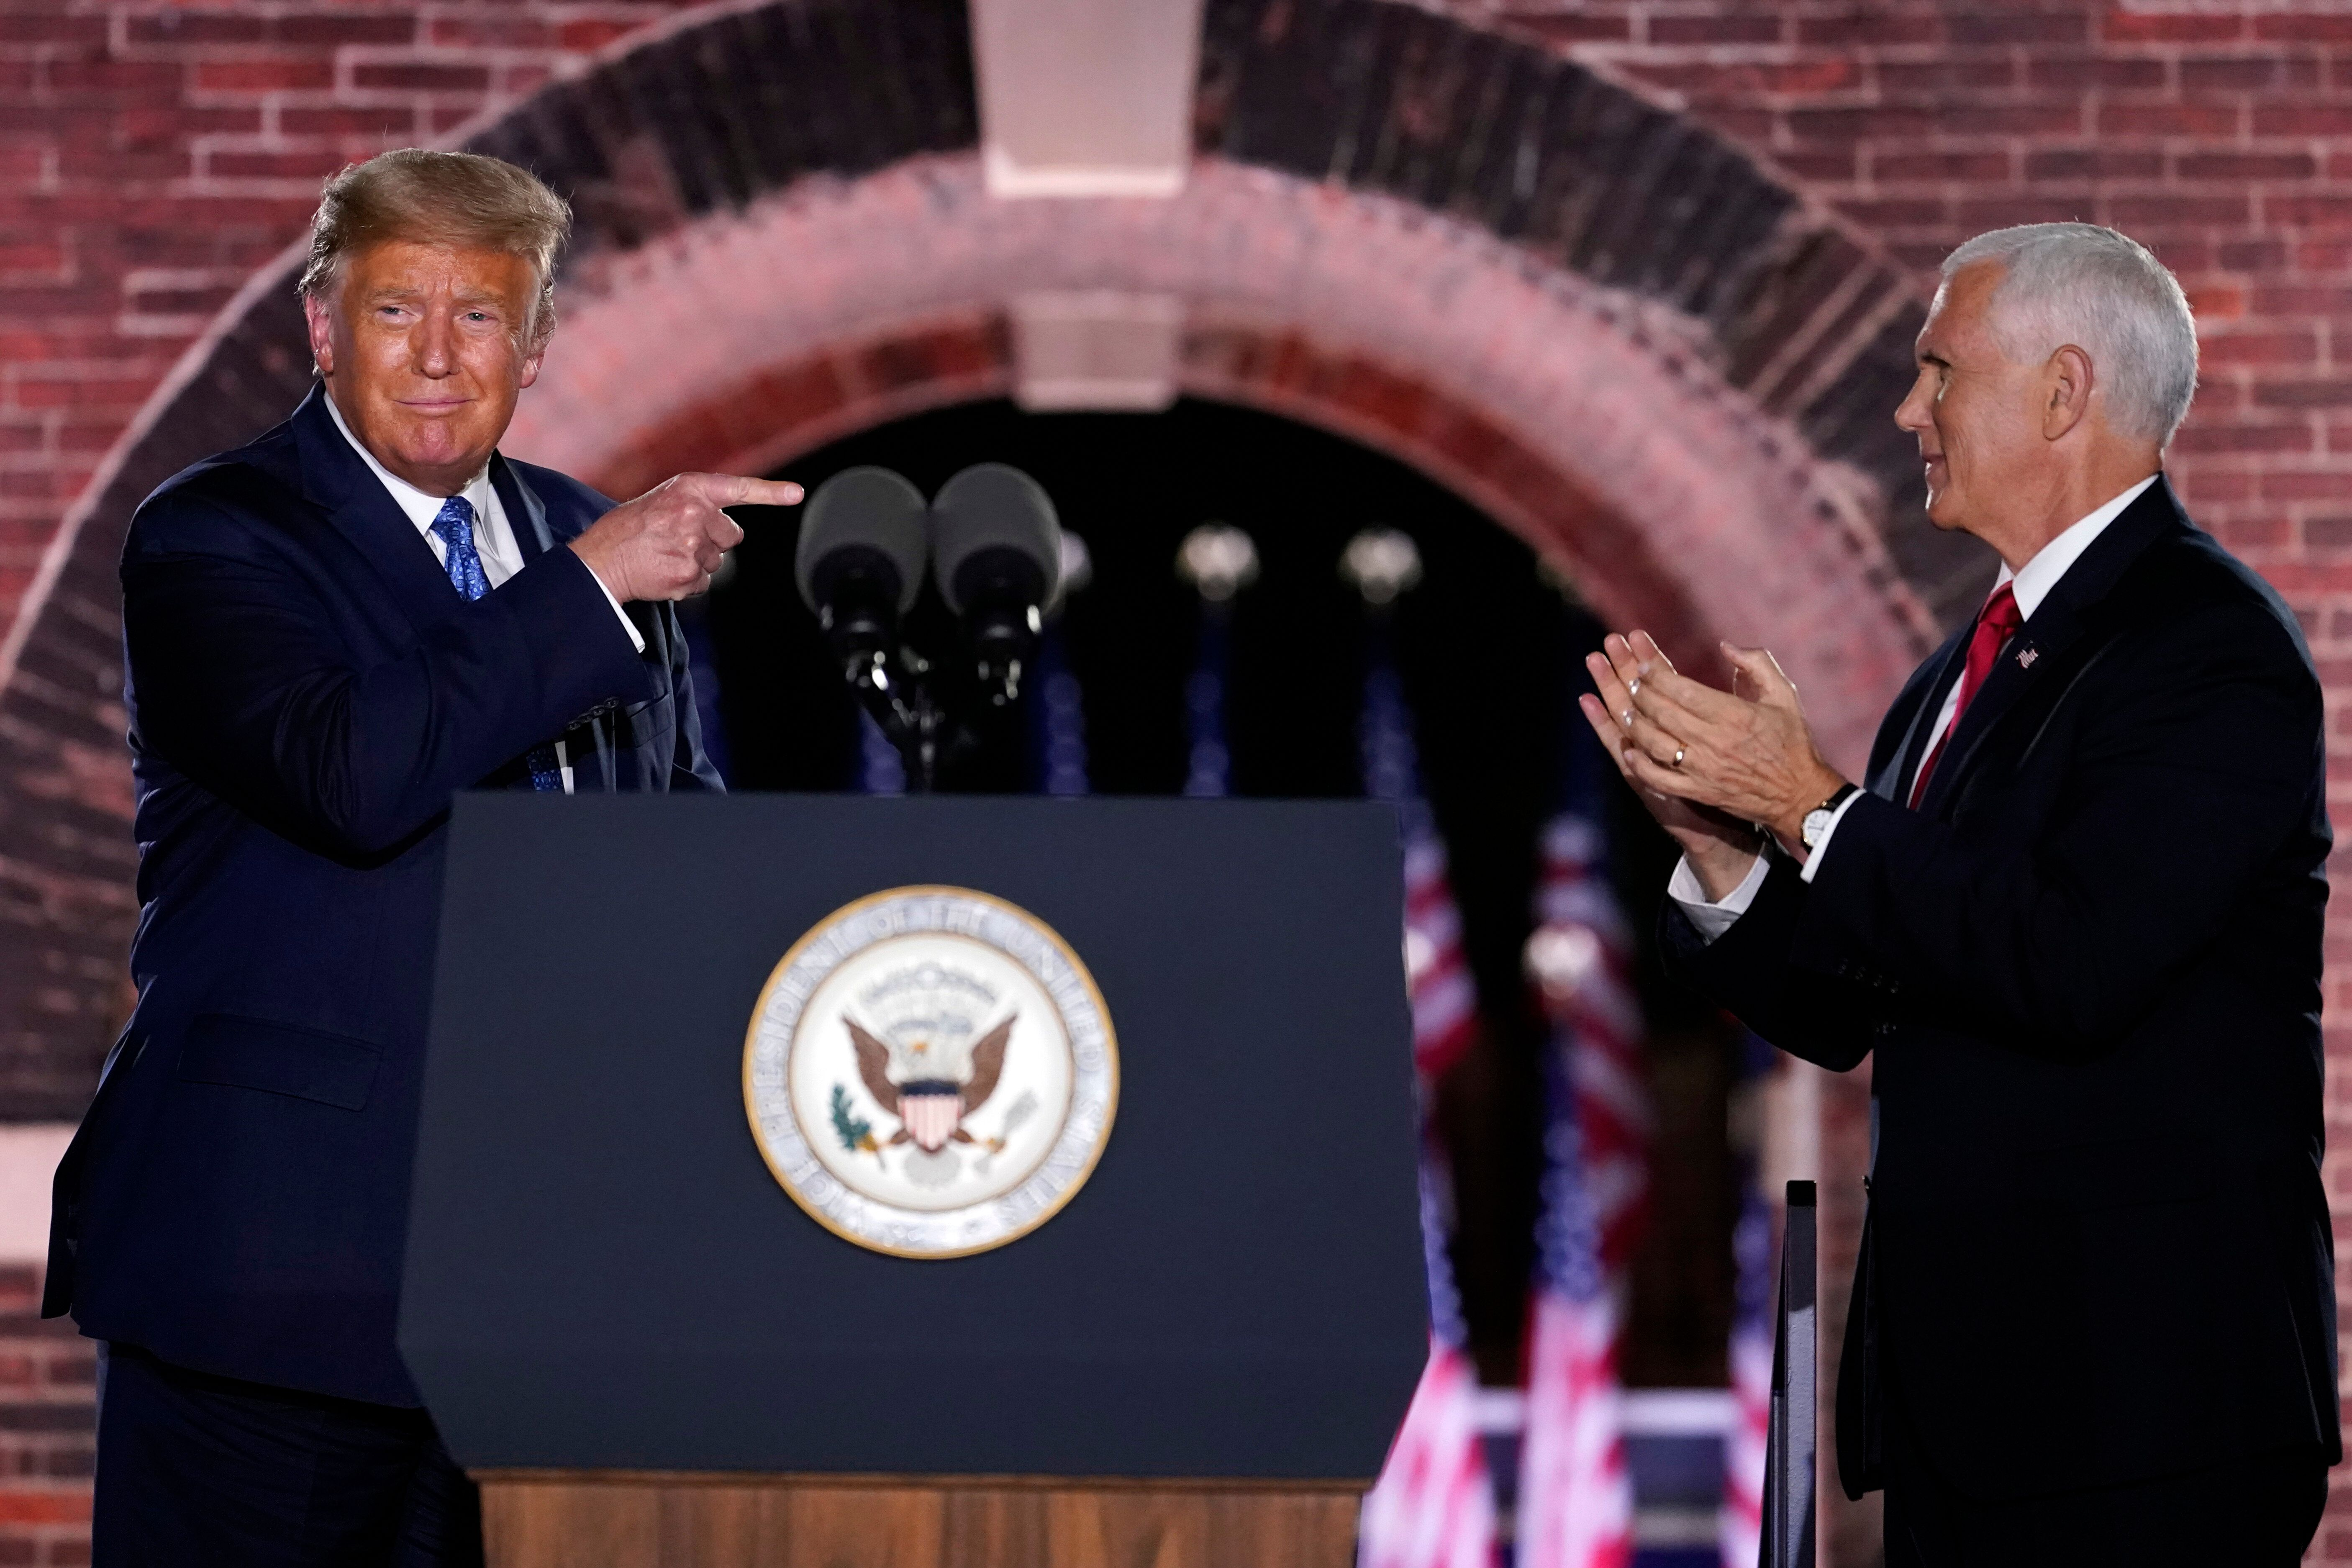 President Donald Trump joins Vice President Mike Pence on stage at the Republican National Convention in Baltimore on Wednesd